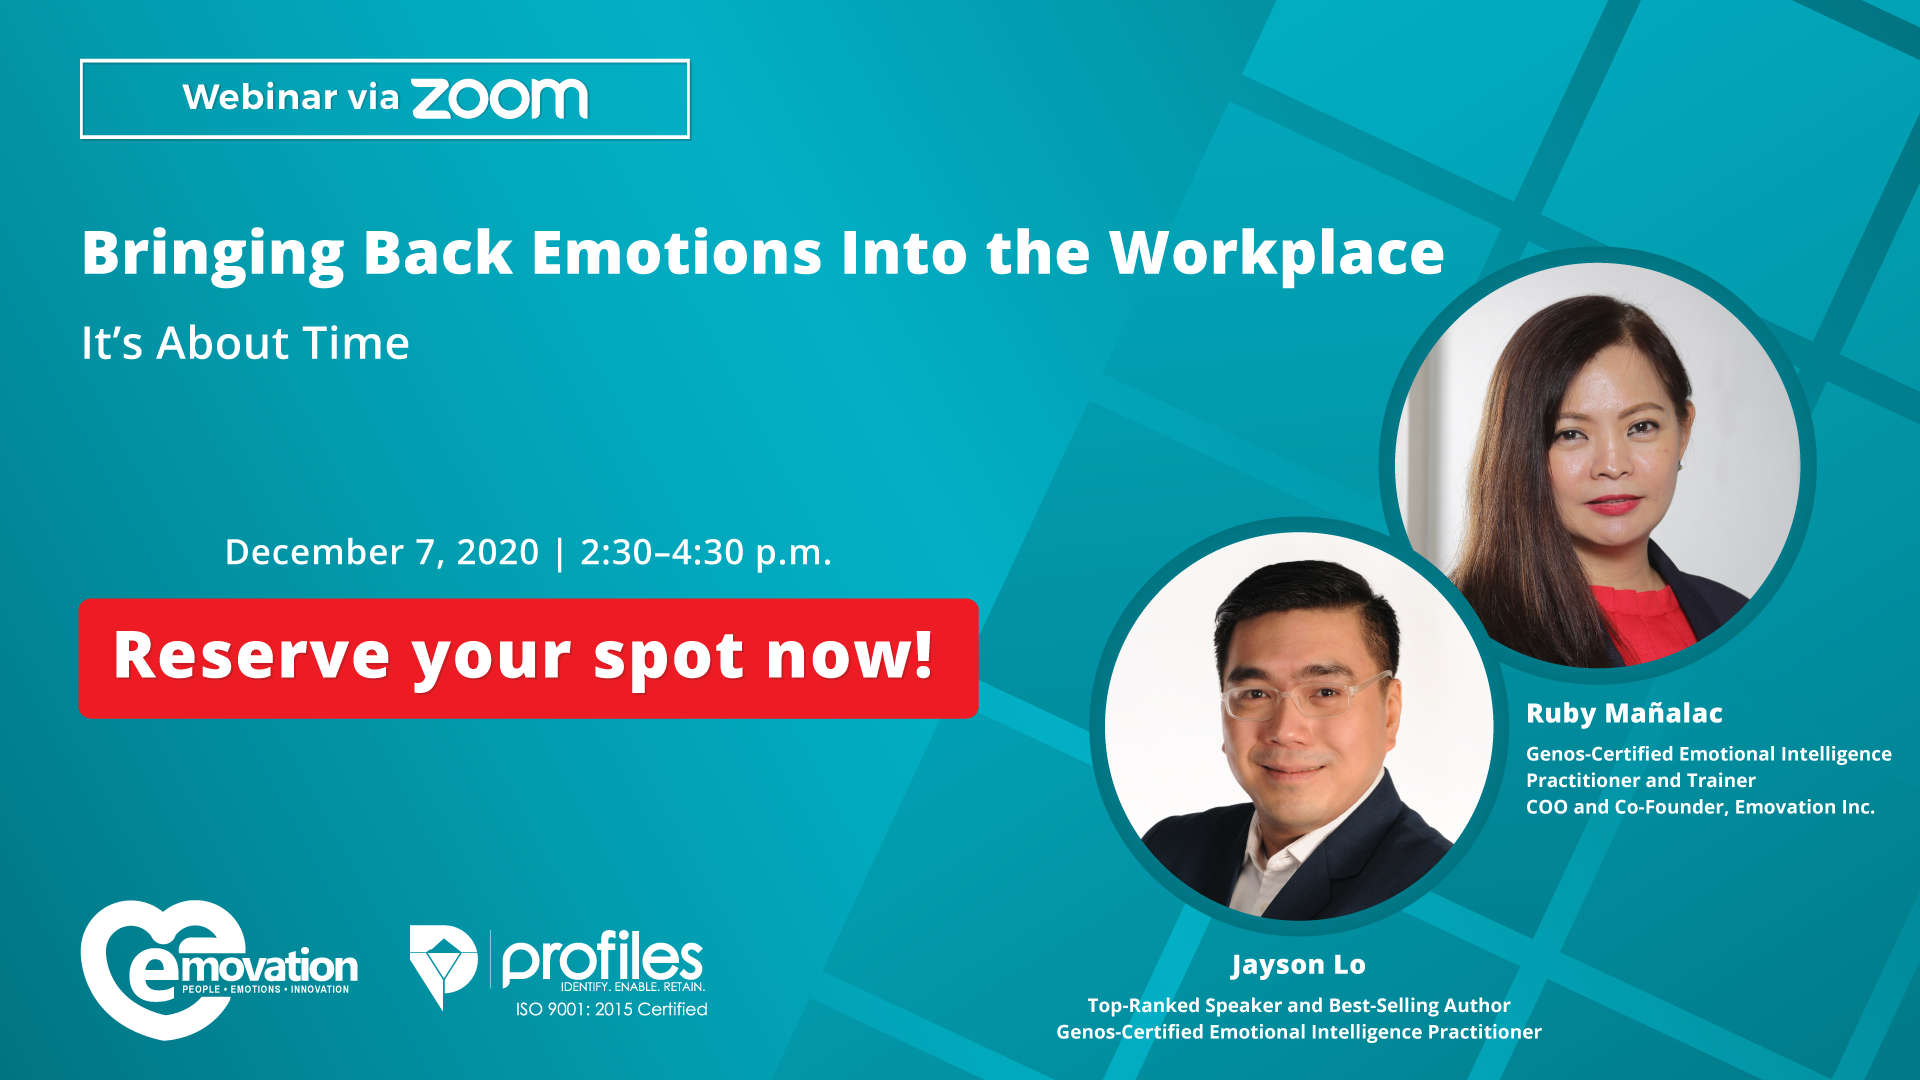 Brining Back Emotions Into the Workplace: It's About Time Webinar